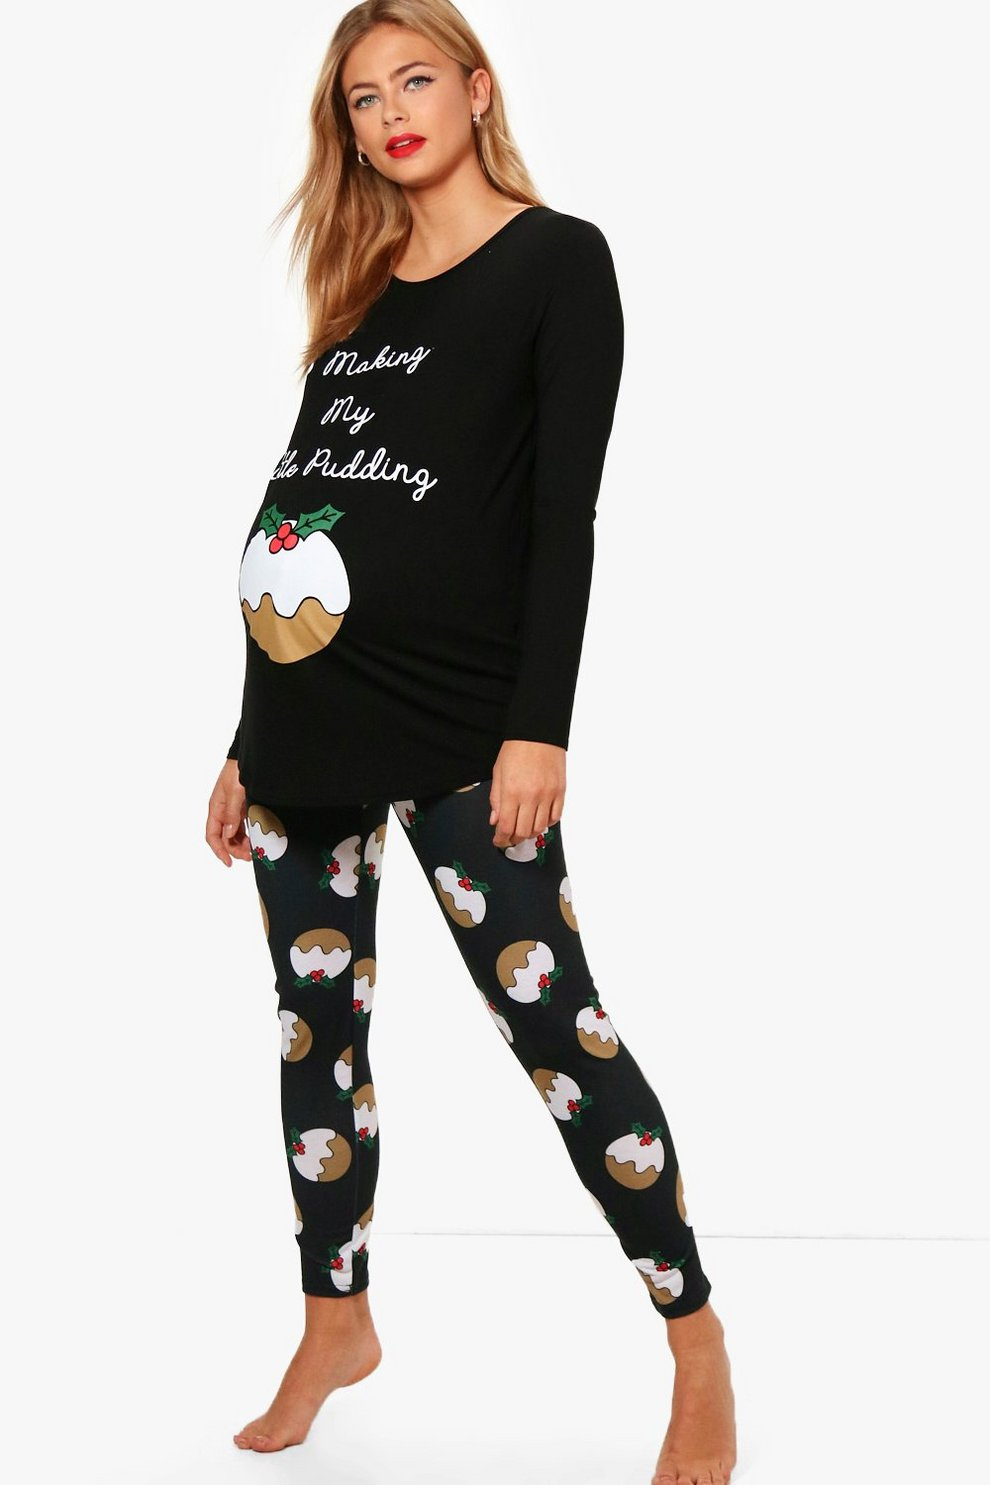 maternity amy little pudding christmas pj set - Maternity Christmas Pajamas